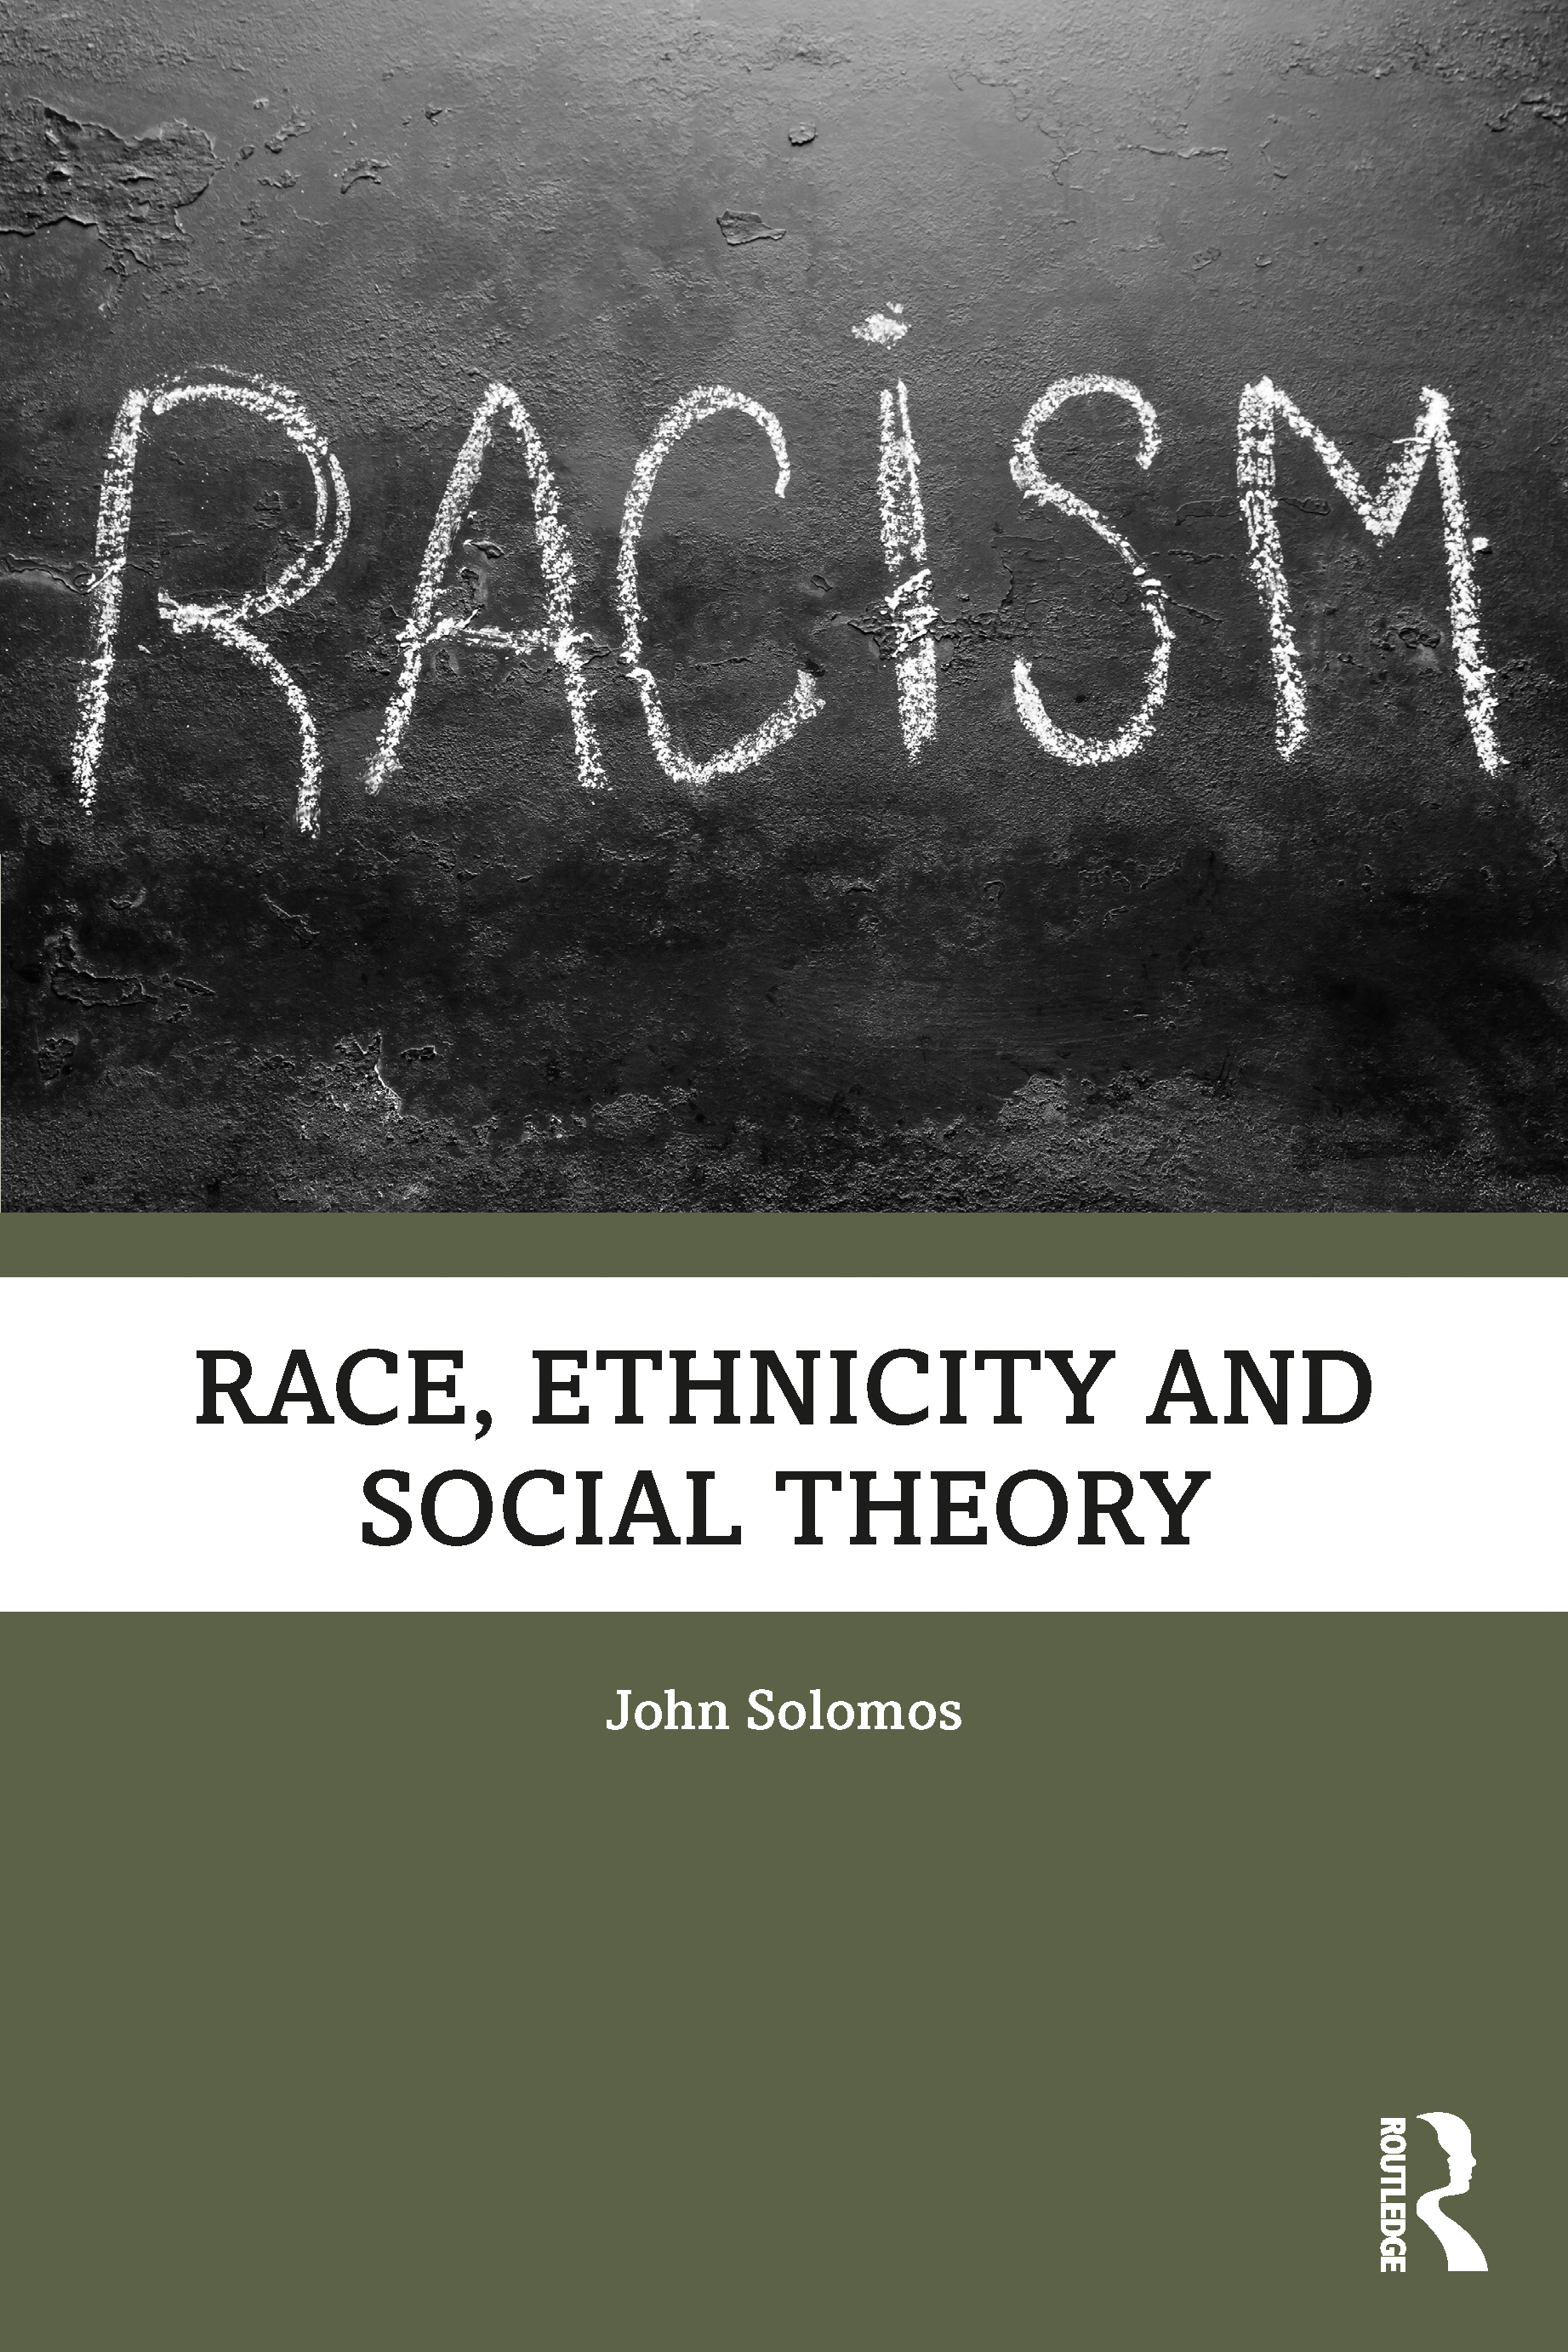 Race, Ethnicity and Social Theory: Theorizing the Other book cover